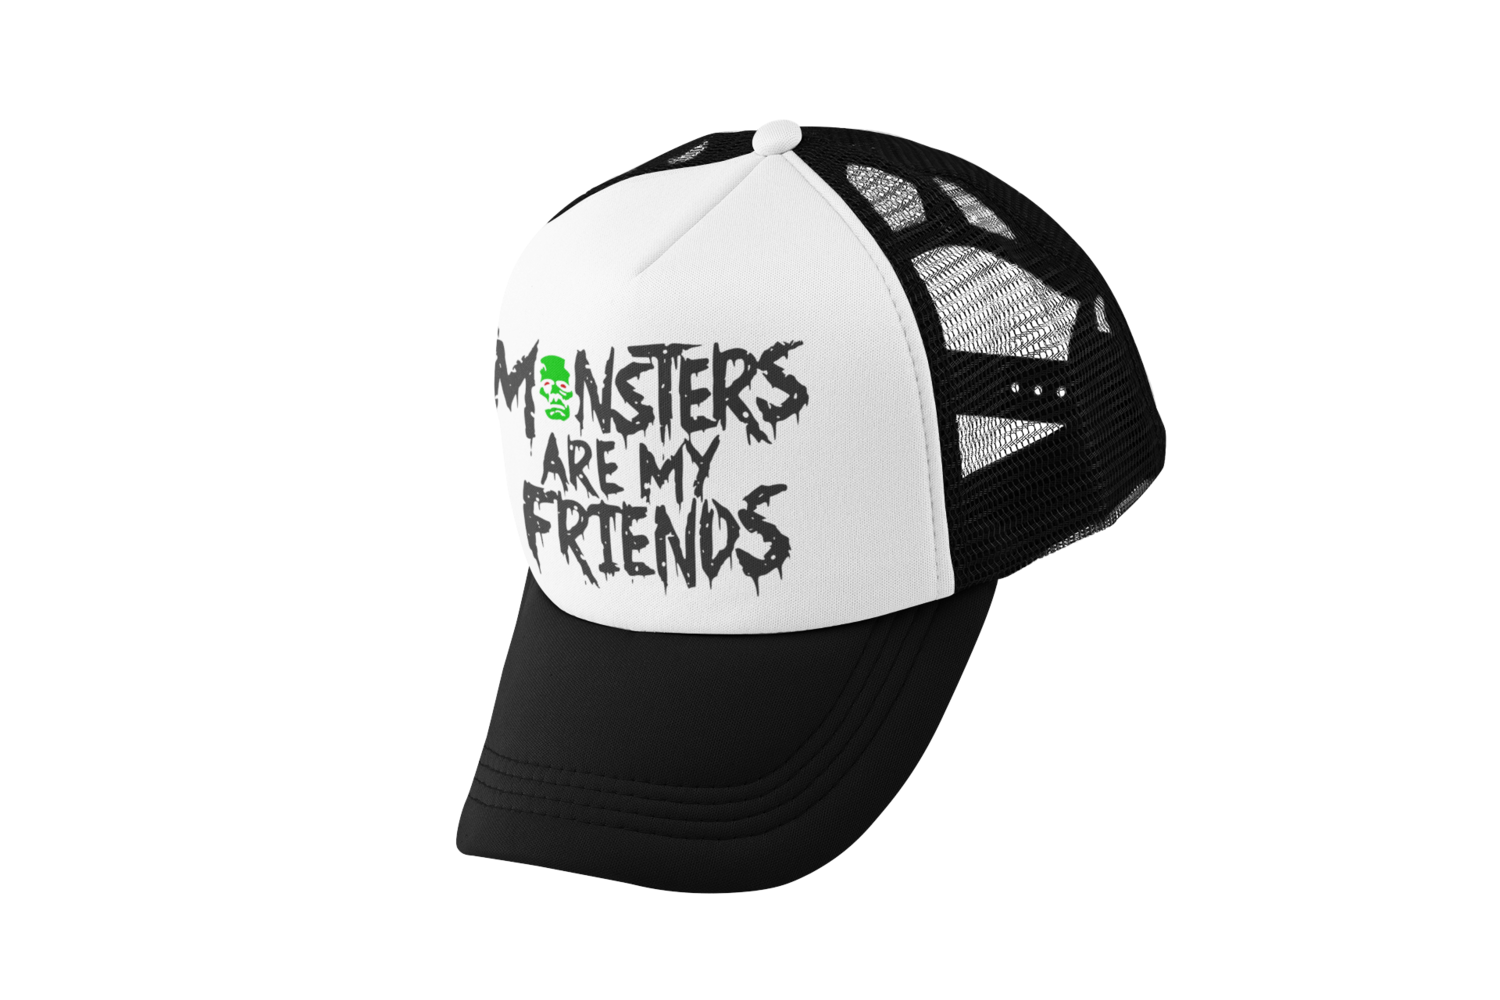 MONSTERS ARE MY FRIENDS TRUCKER CAP